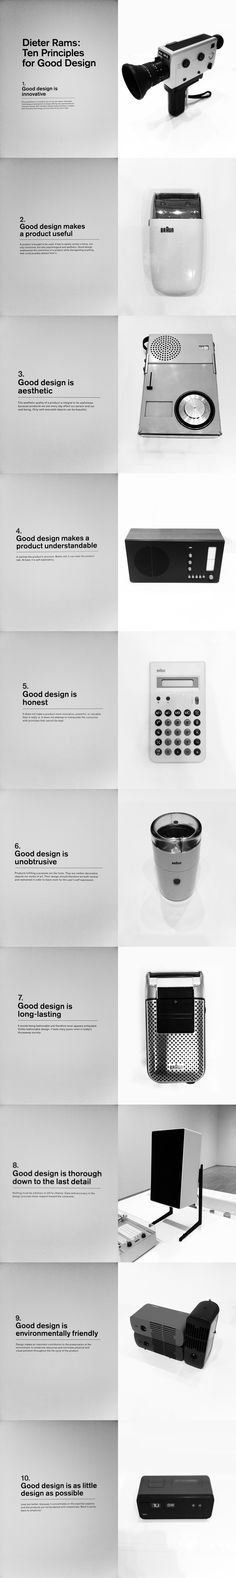 Infographic: Ten Principles for Good Design | Design made in Germany: Deiter Rams |